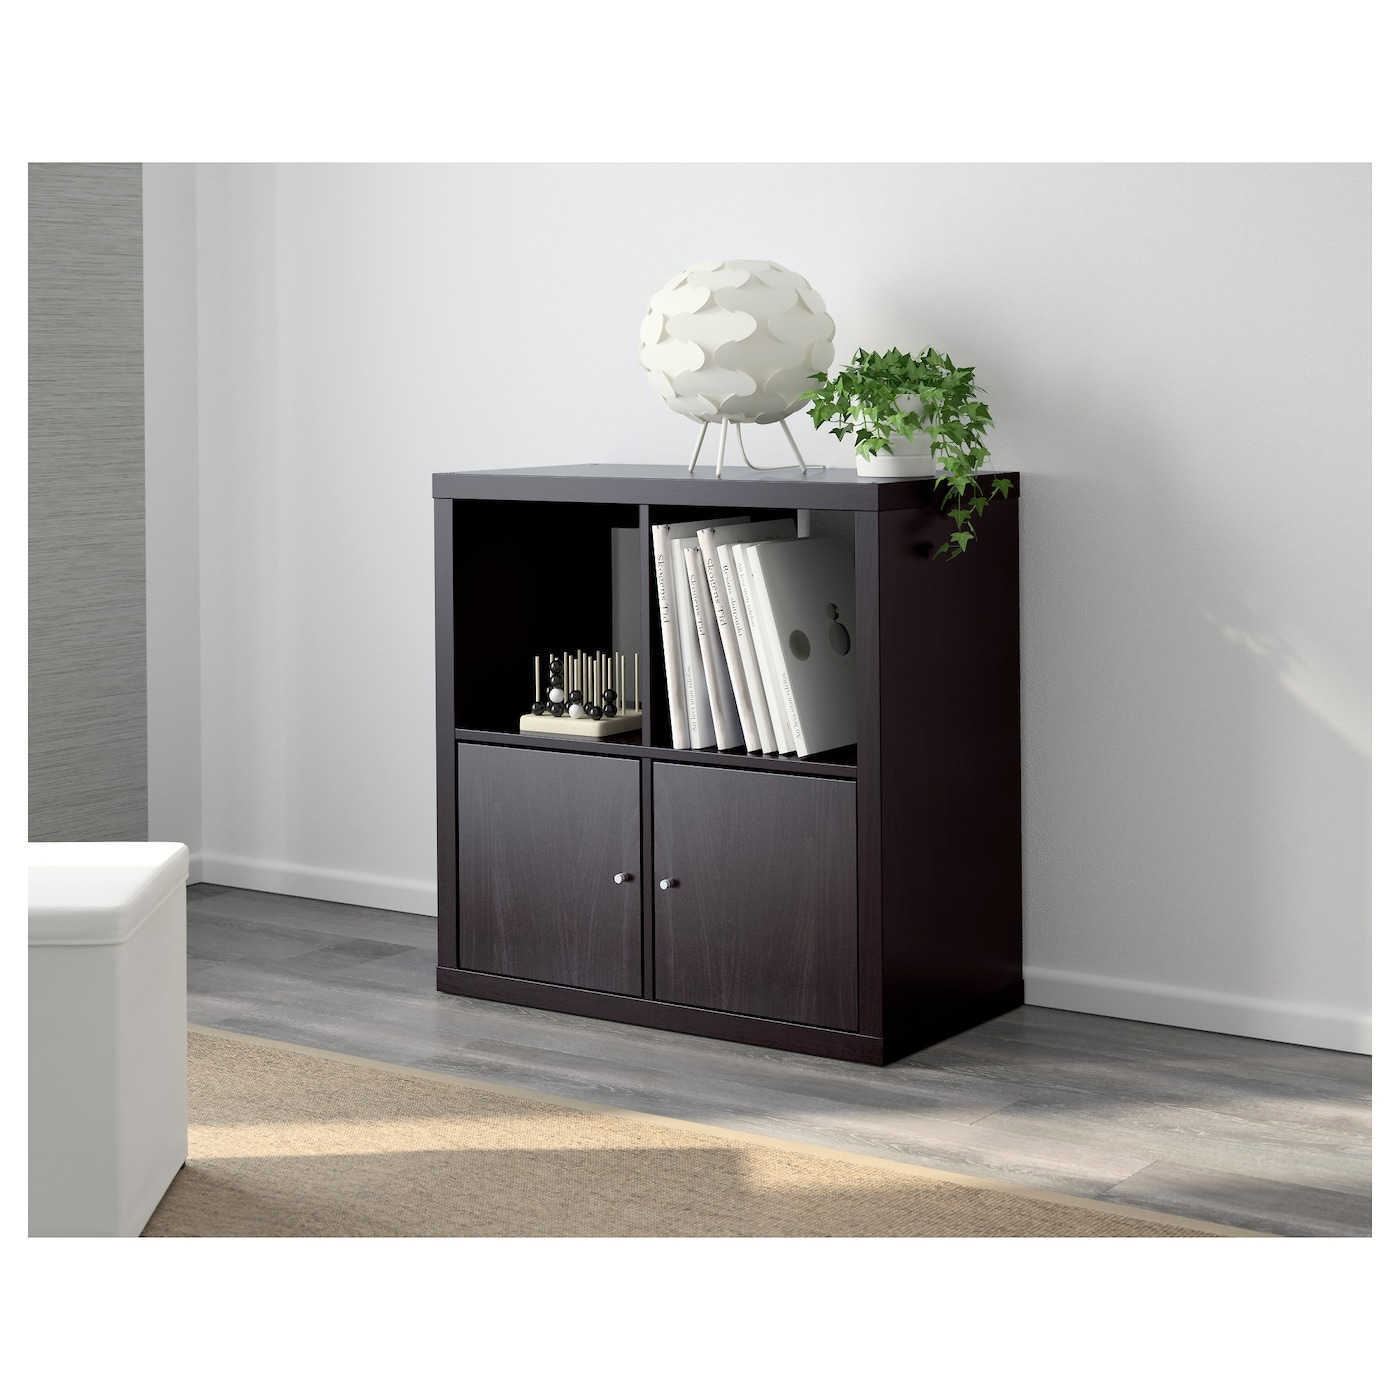 kallax shelving unit black brown 77 x 77 cm ikea. Black Bedroom Furniture Sets. Home Design Ideas